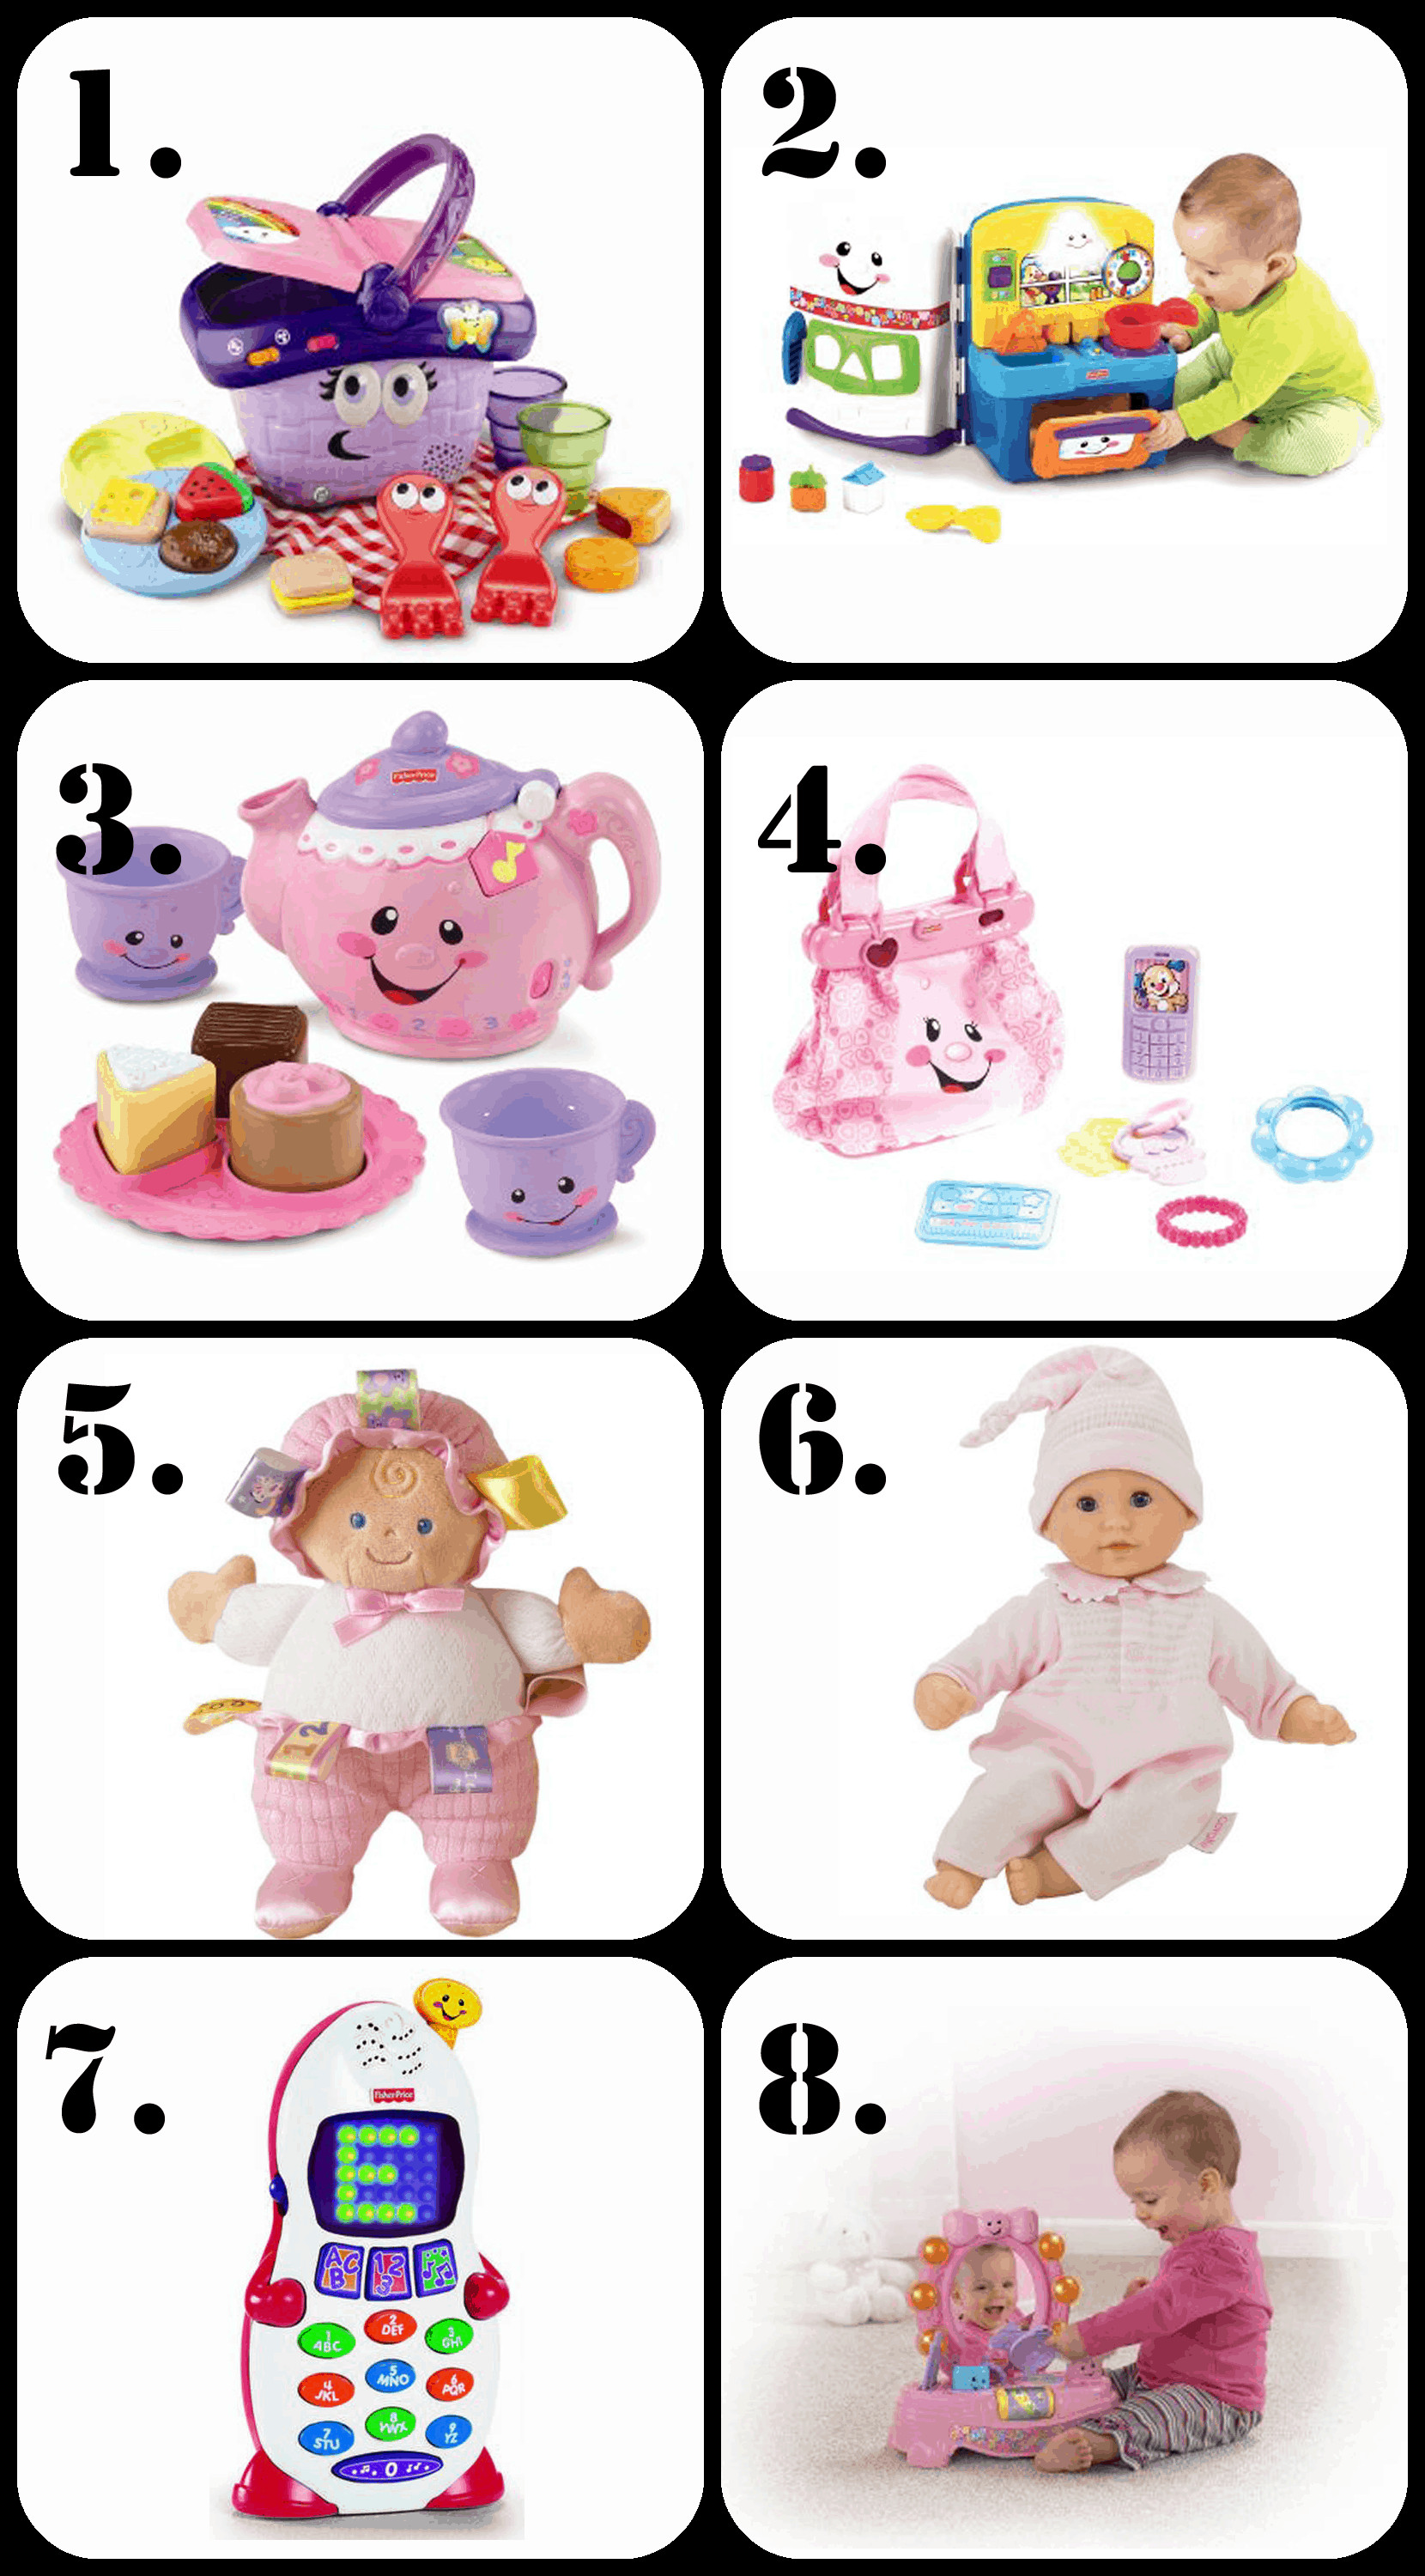 Best ideas about Gift Ideas For 1 Year Old Baby Girl . Save or Pin The Ultimate List of Gift Ideas for a 1 Year Old Girl Now.